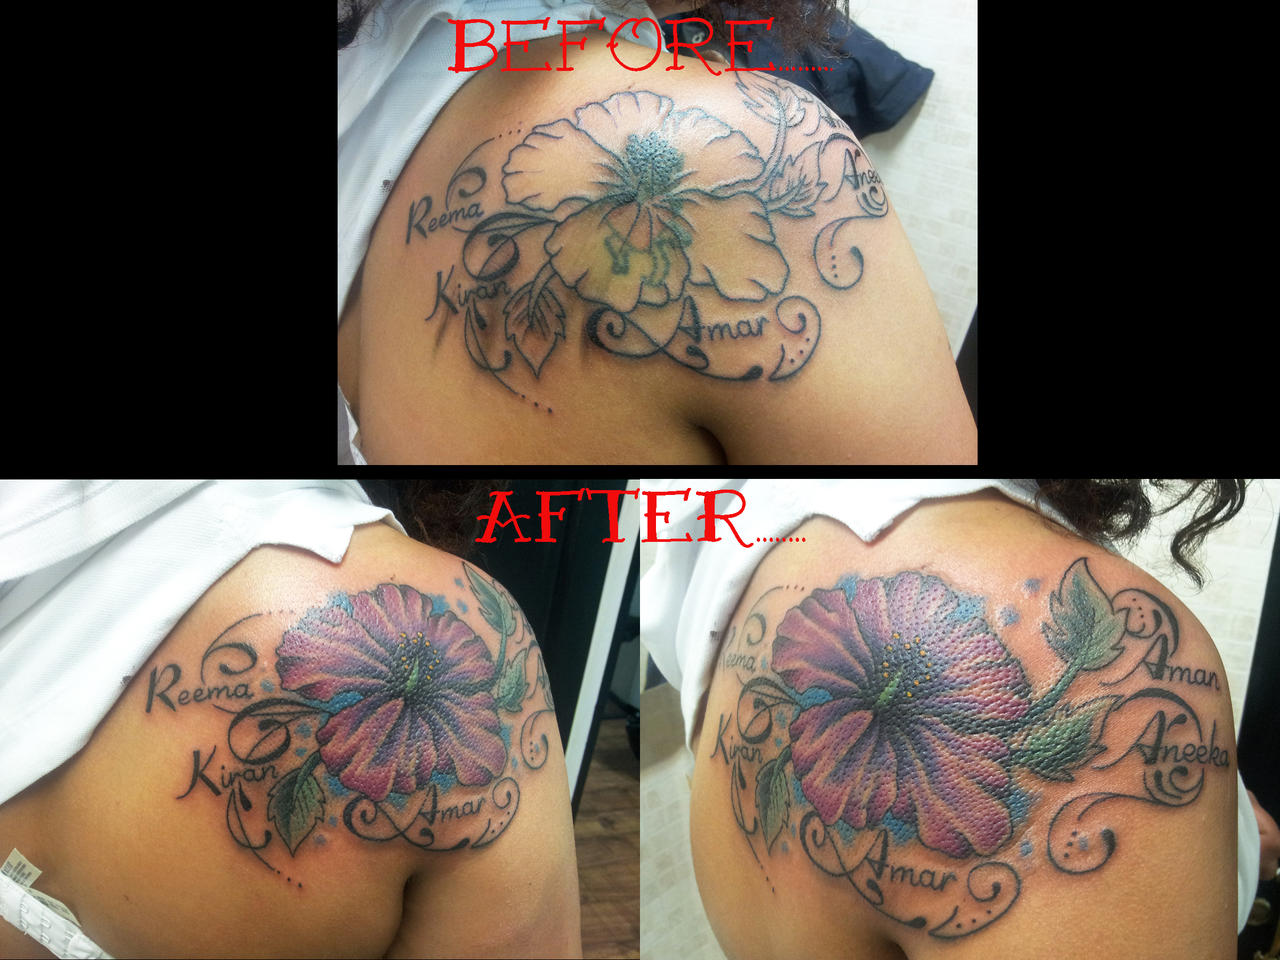 Hibiscus flower cover up by ashtonbkeje on deviantart hibiscus flower cover up by ashtonbkeje hibiscus flower cover up by ashtonbkeje izmirmasajfo